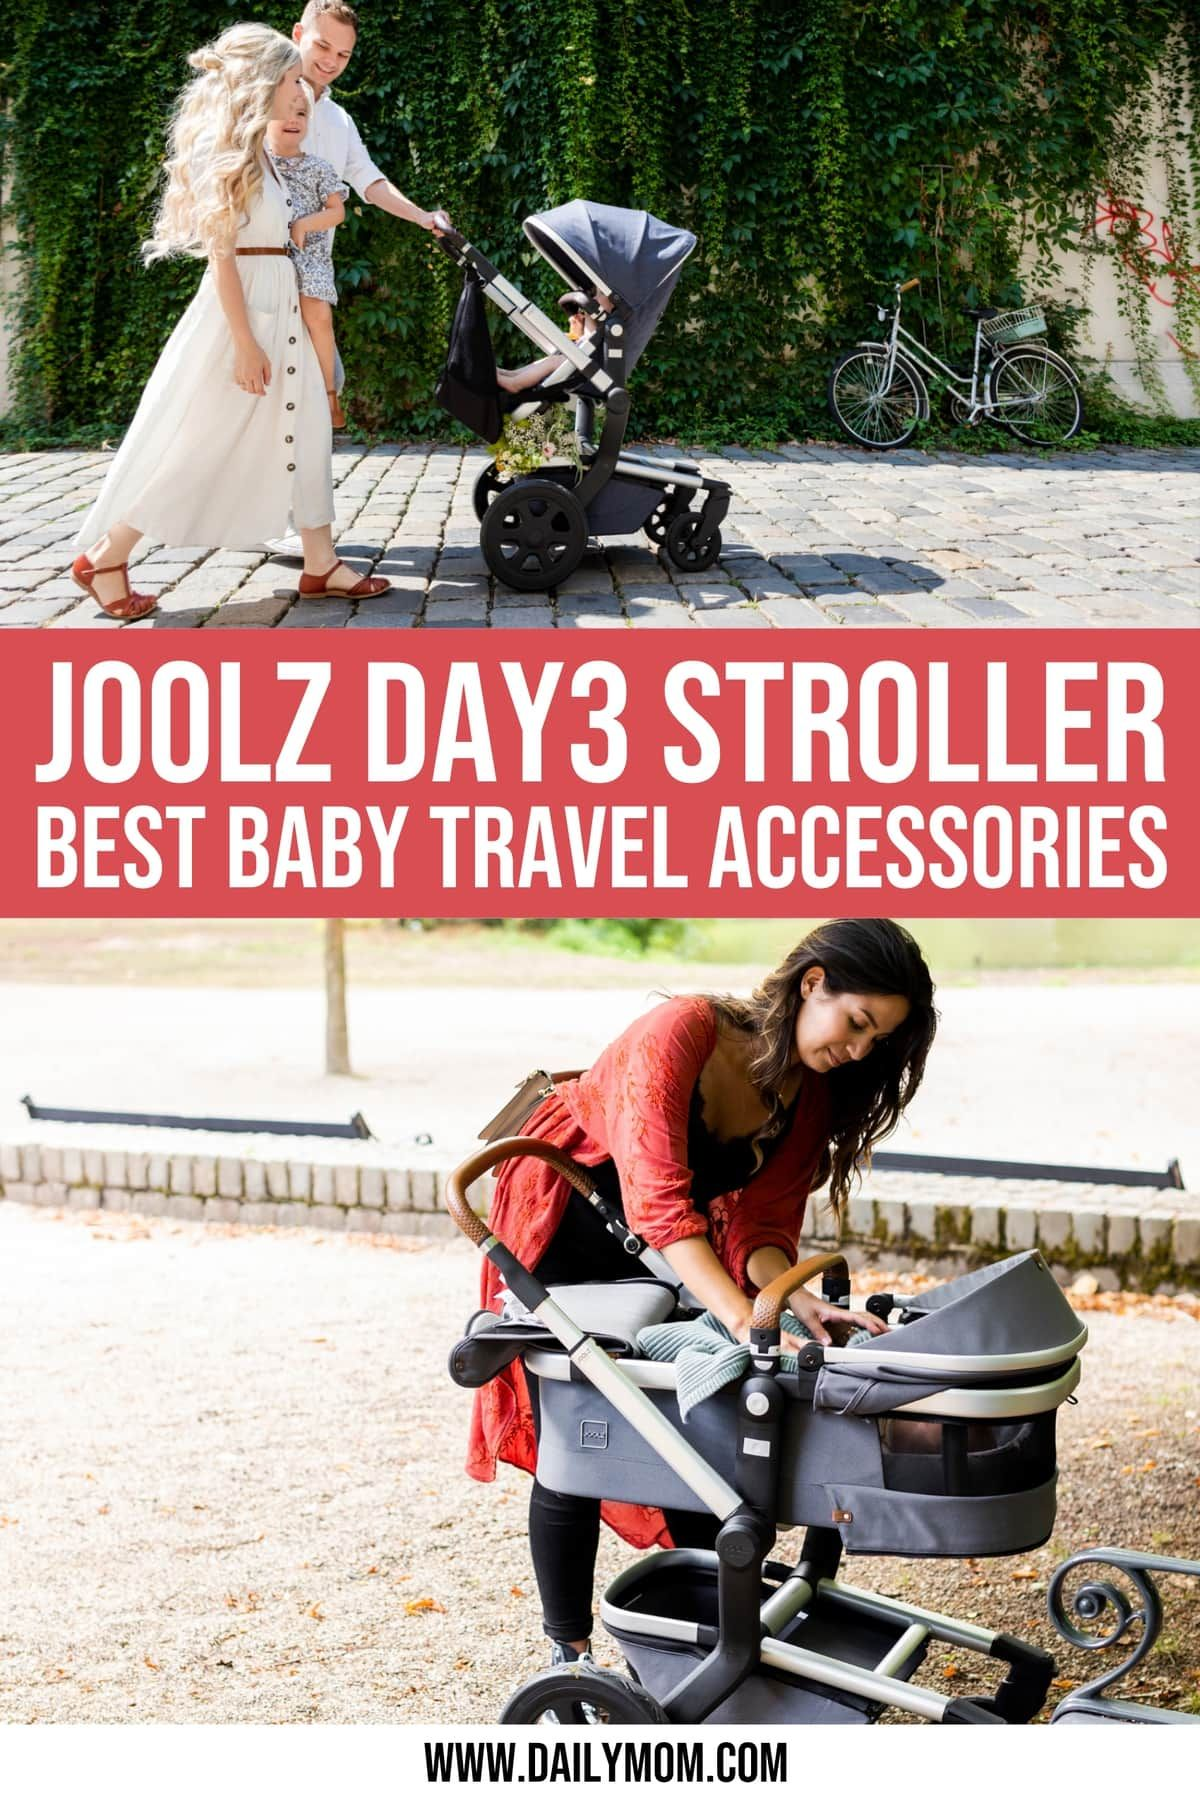 The Best Stroller From JoolzBaby Brand Series